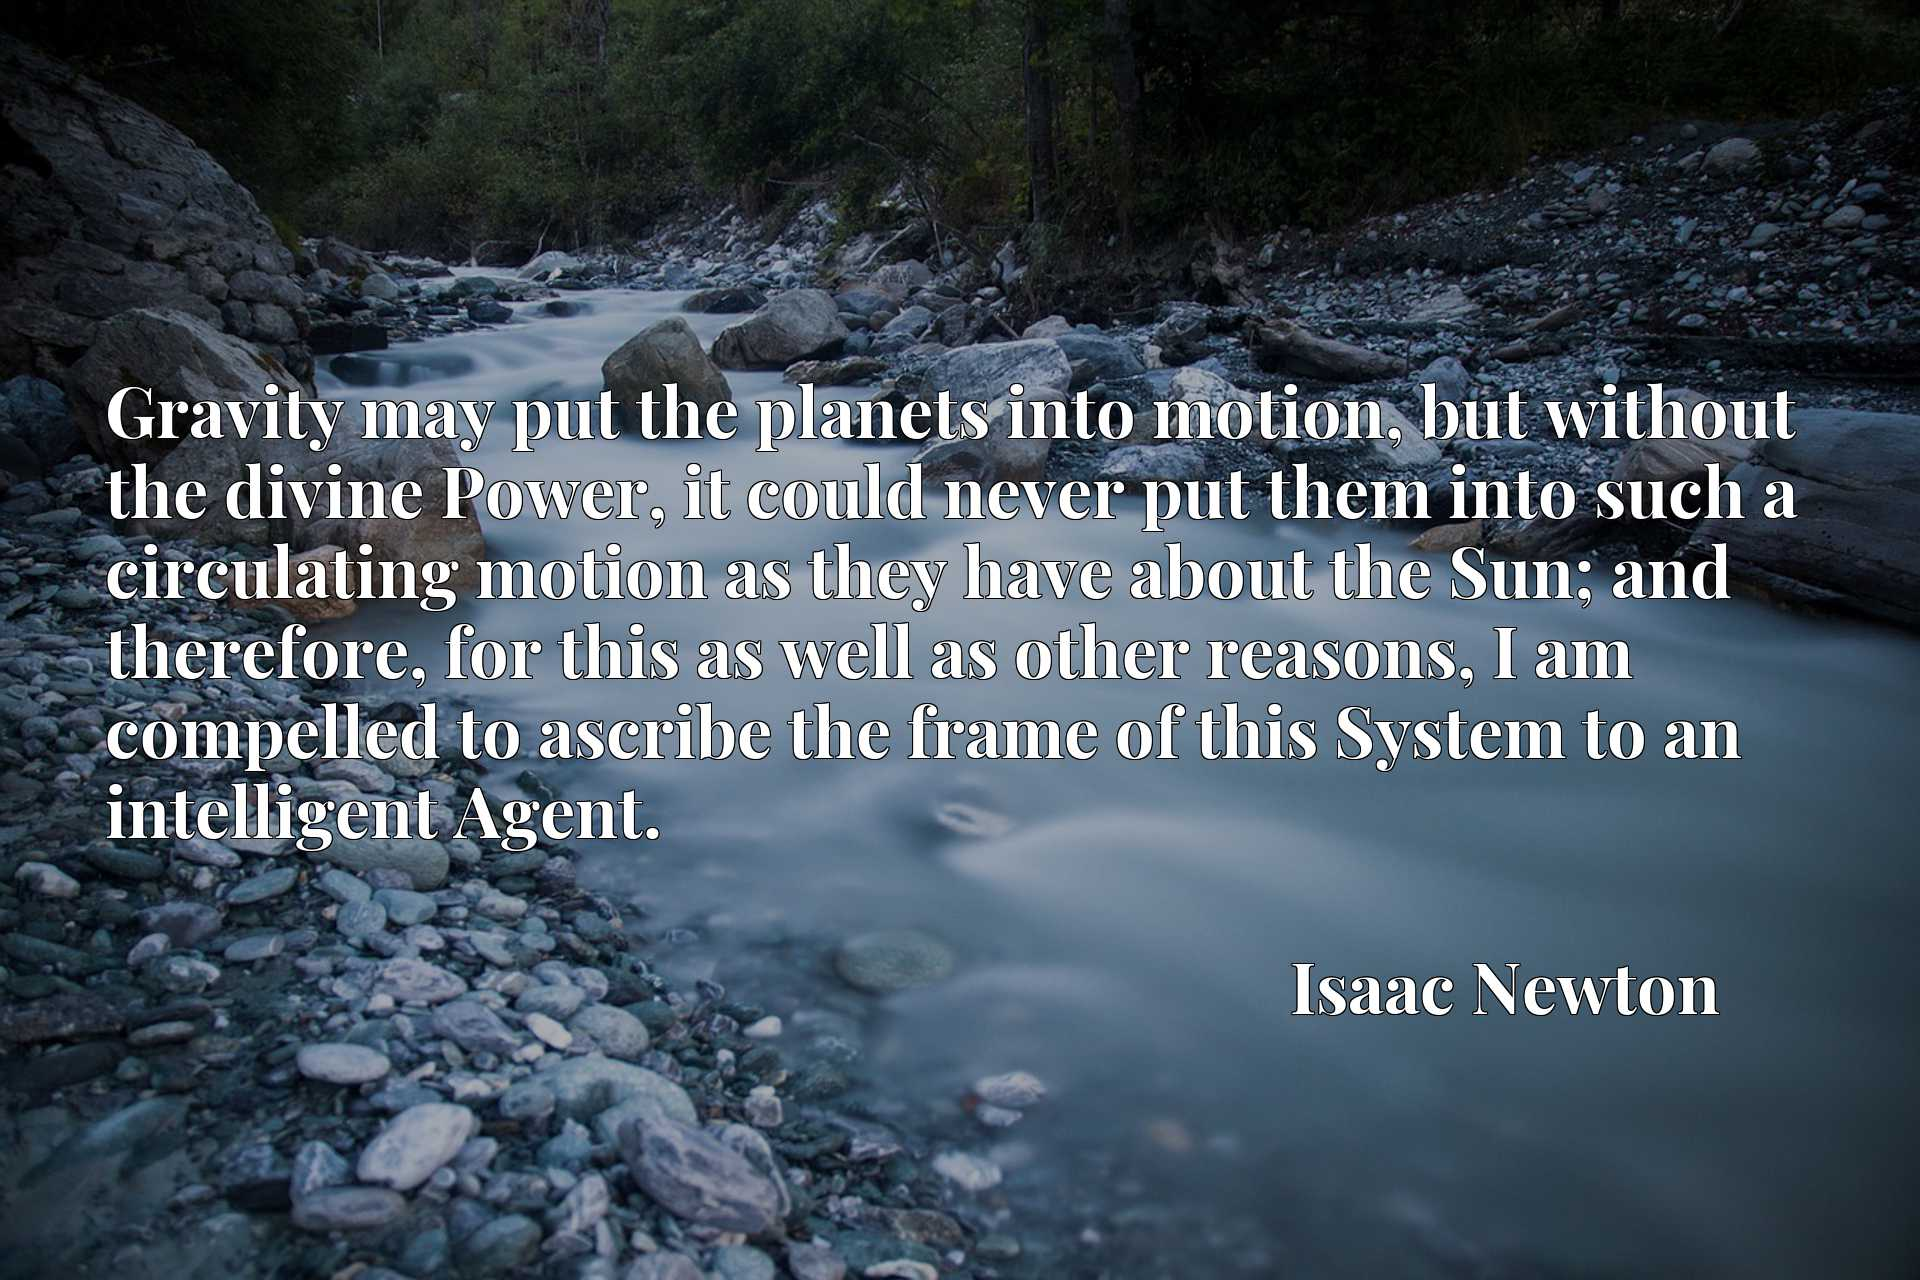 Gravity may put the planets into motion, but without the divine Power, it could never put them into such a circulating motion as they have about the Sun; and therefore, for this as well as other reasons, I am compelled to ascribe the frame of this System to an intelligent Agent.